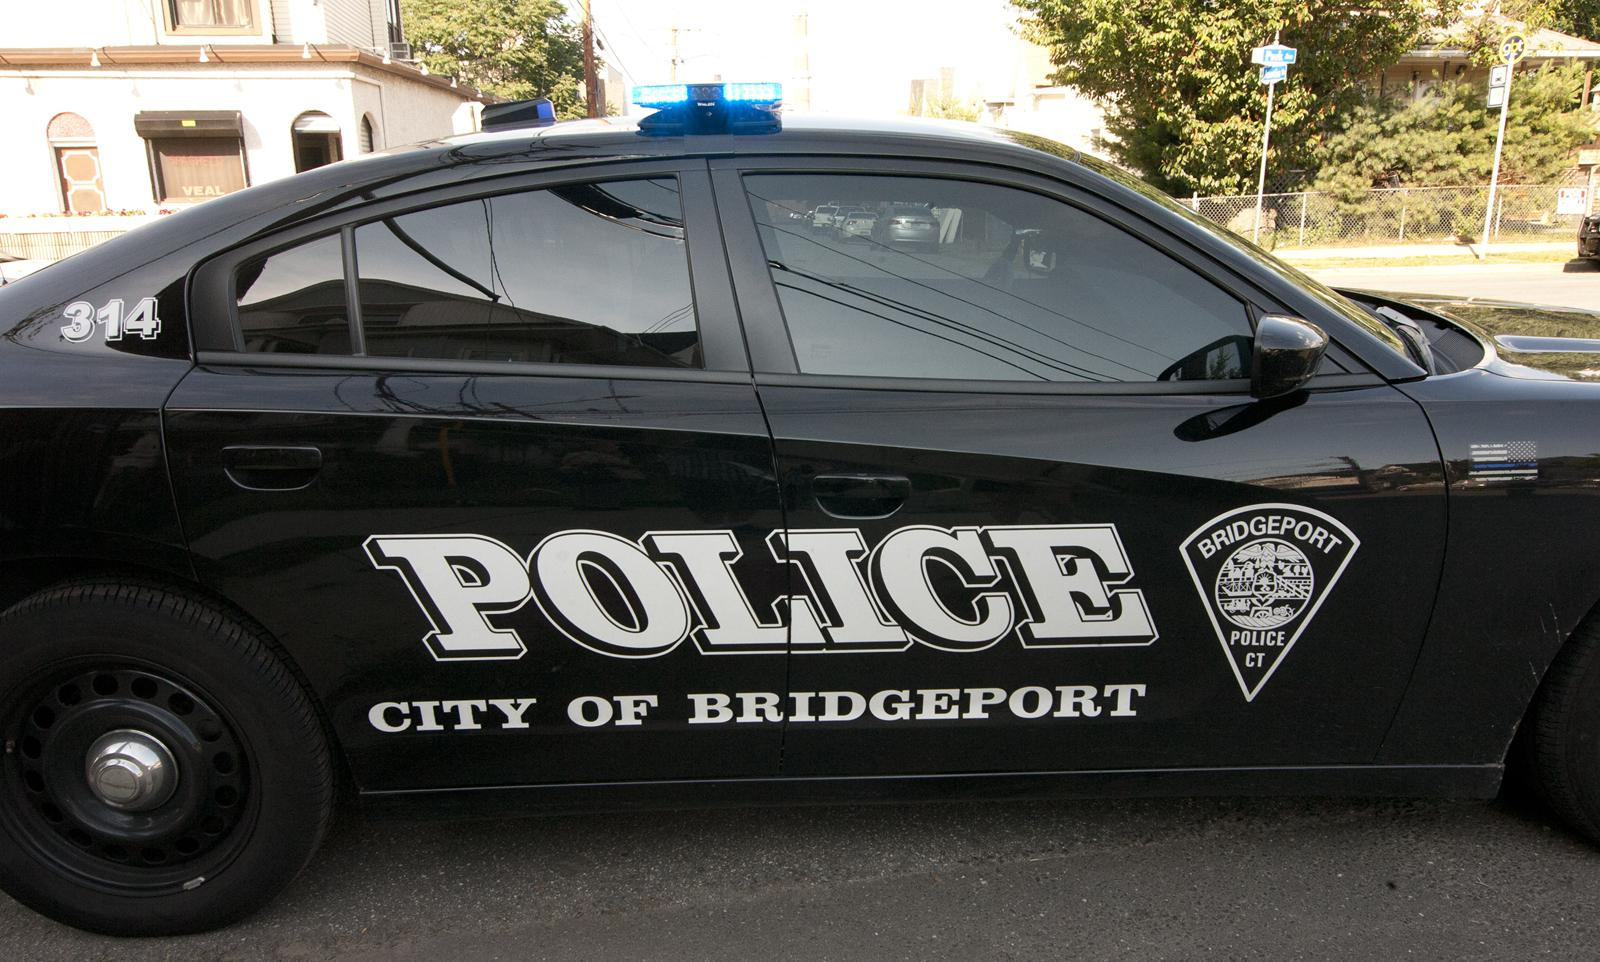 Man robbed at gunpoint, pistol-whipped in Bridgeport